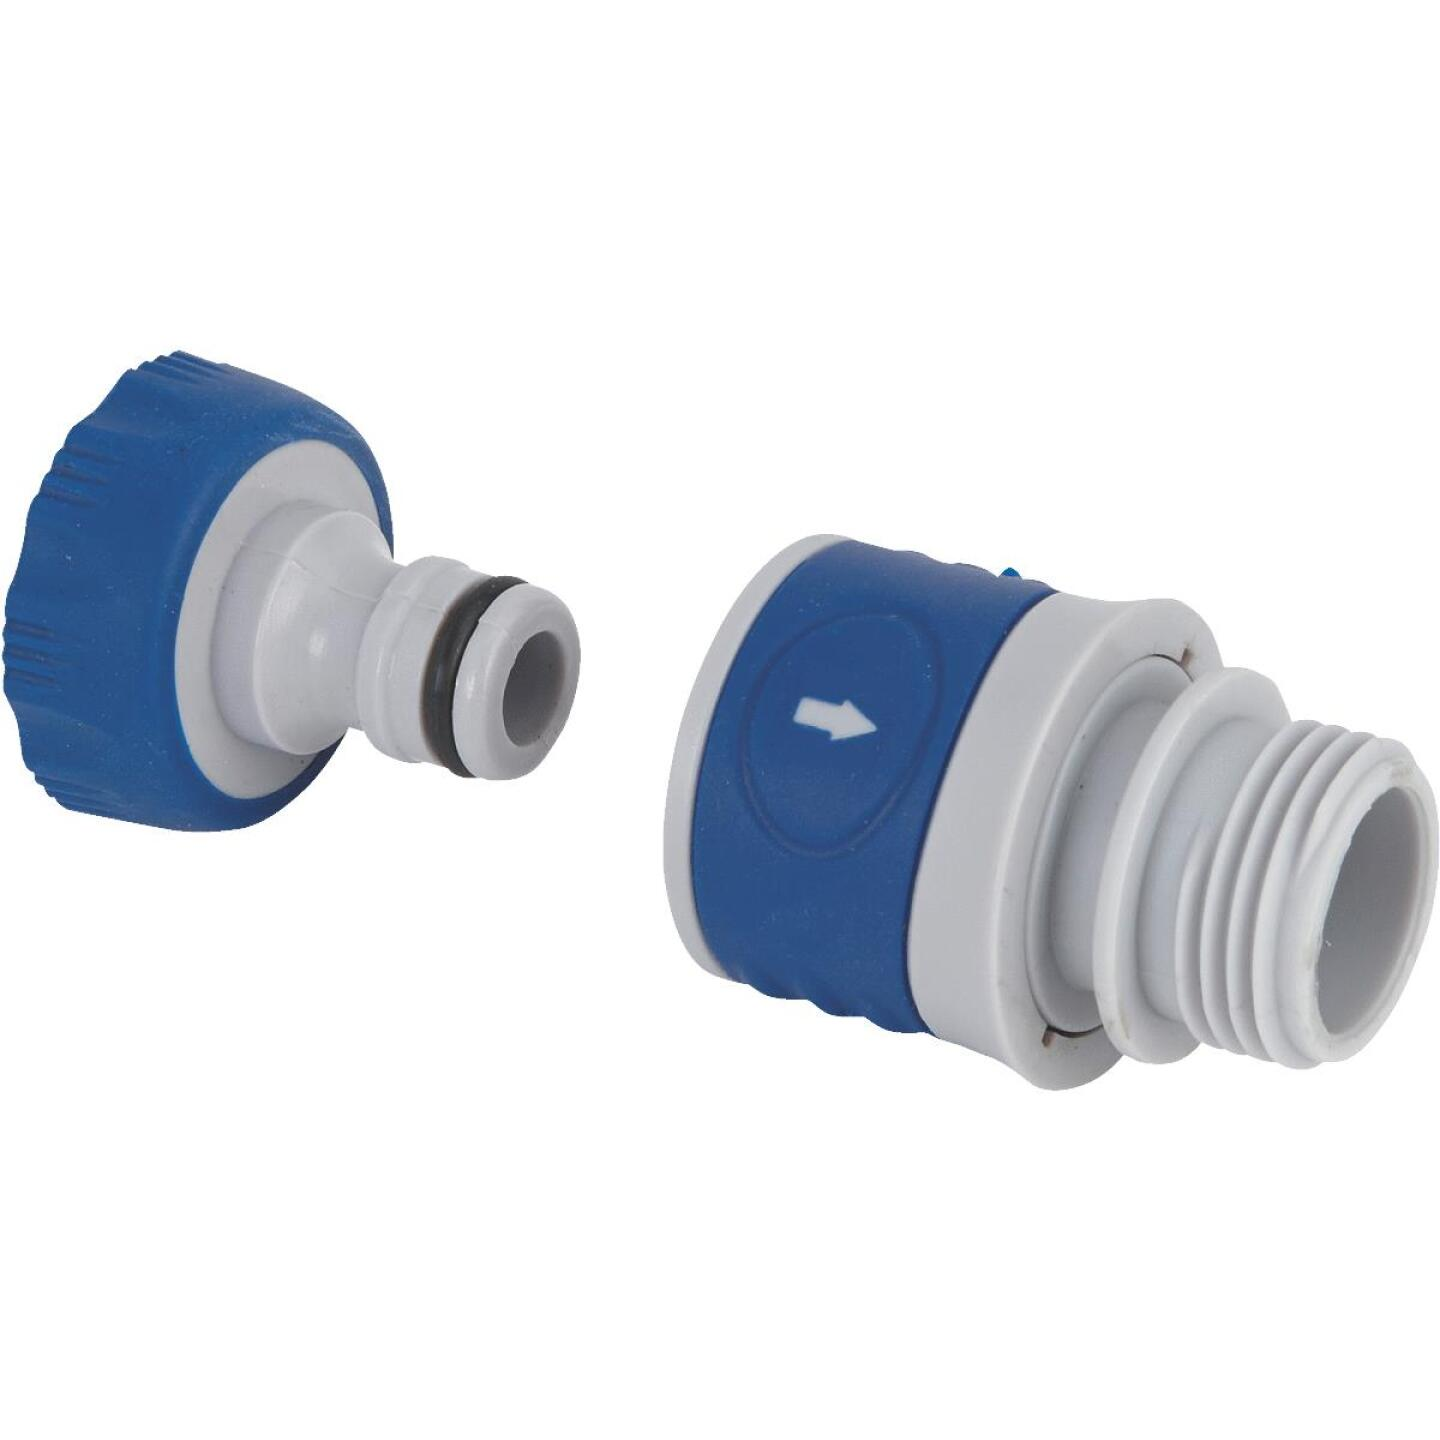 Best Garden 1 Male, 1 Female Poly Faucet Quick Connect Connector Set Image 1